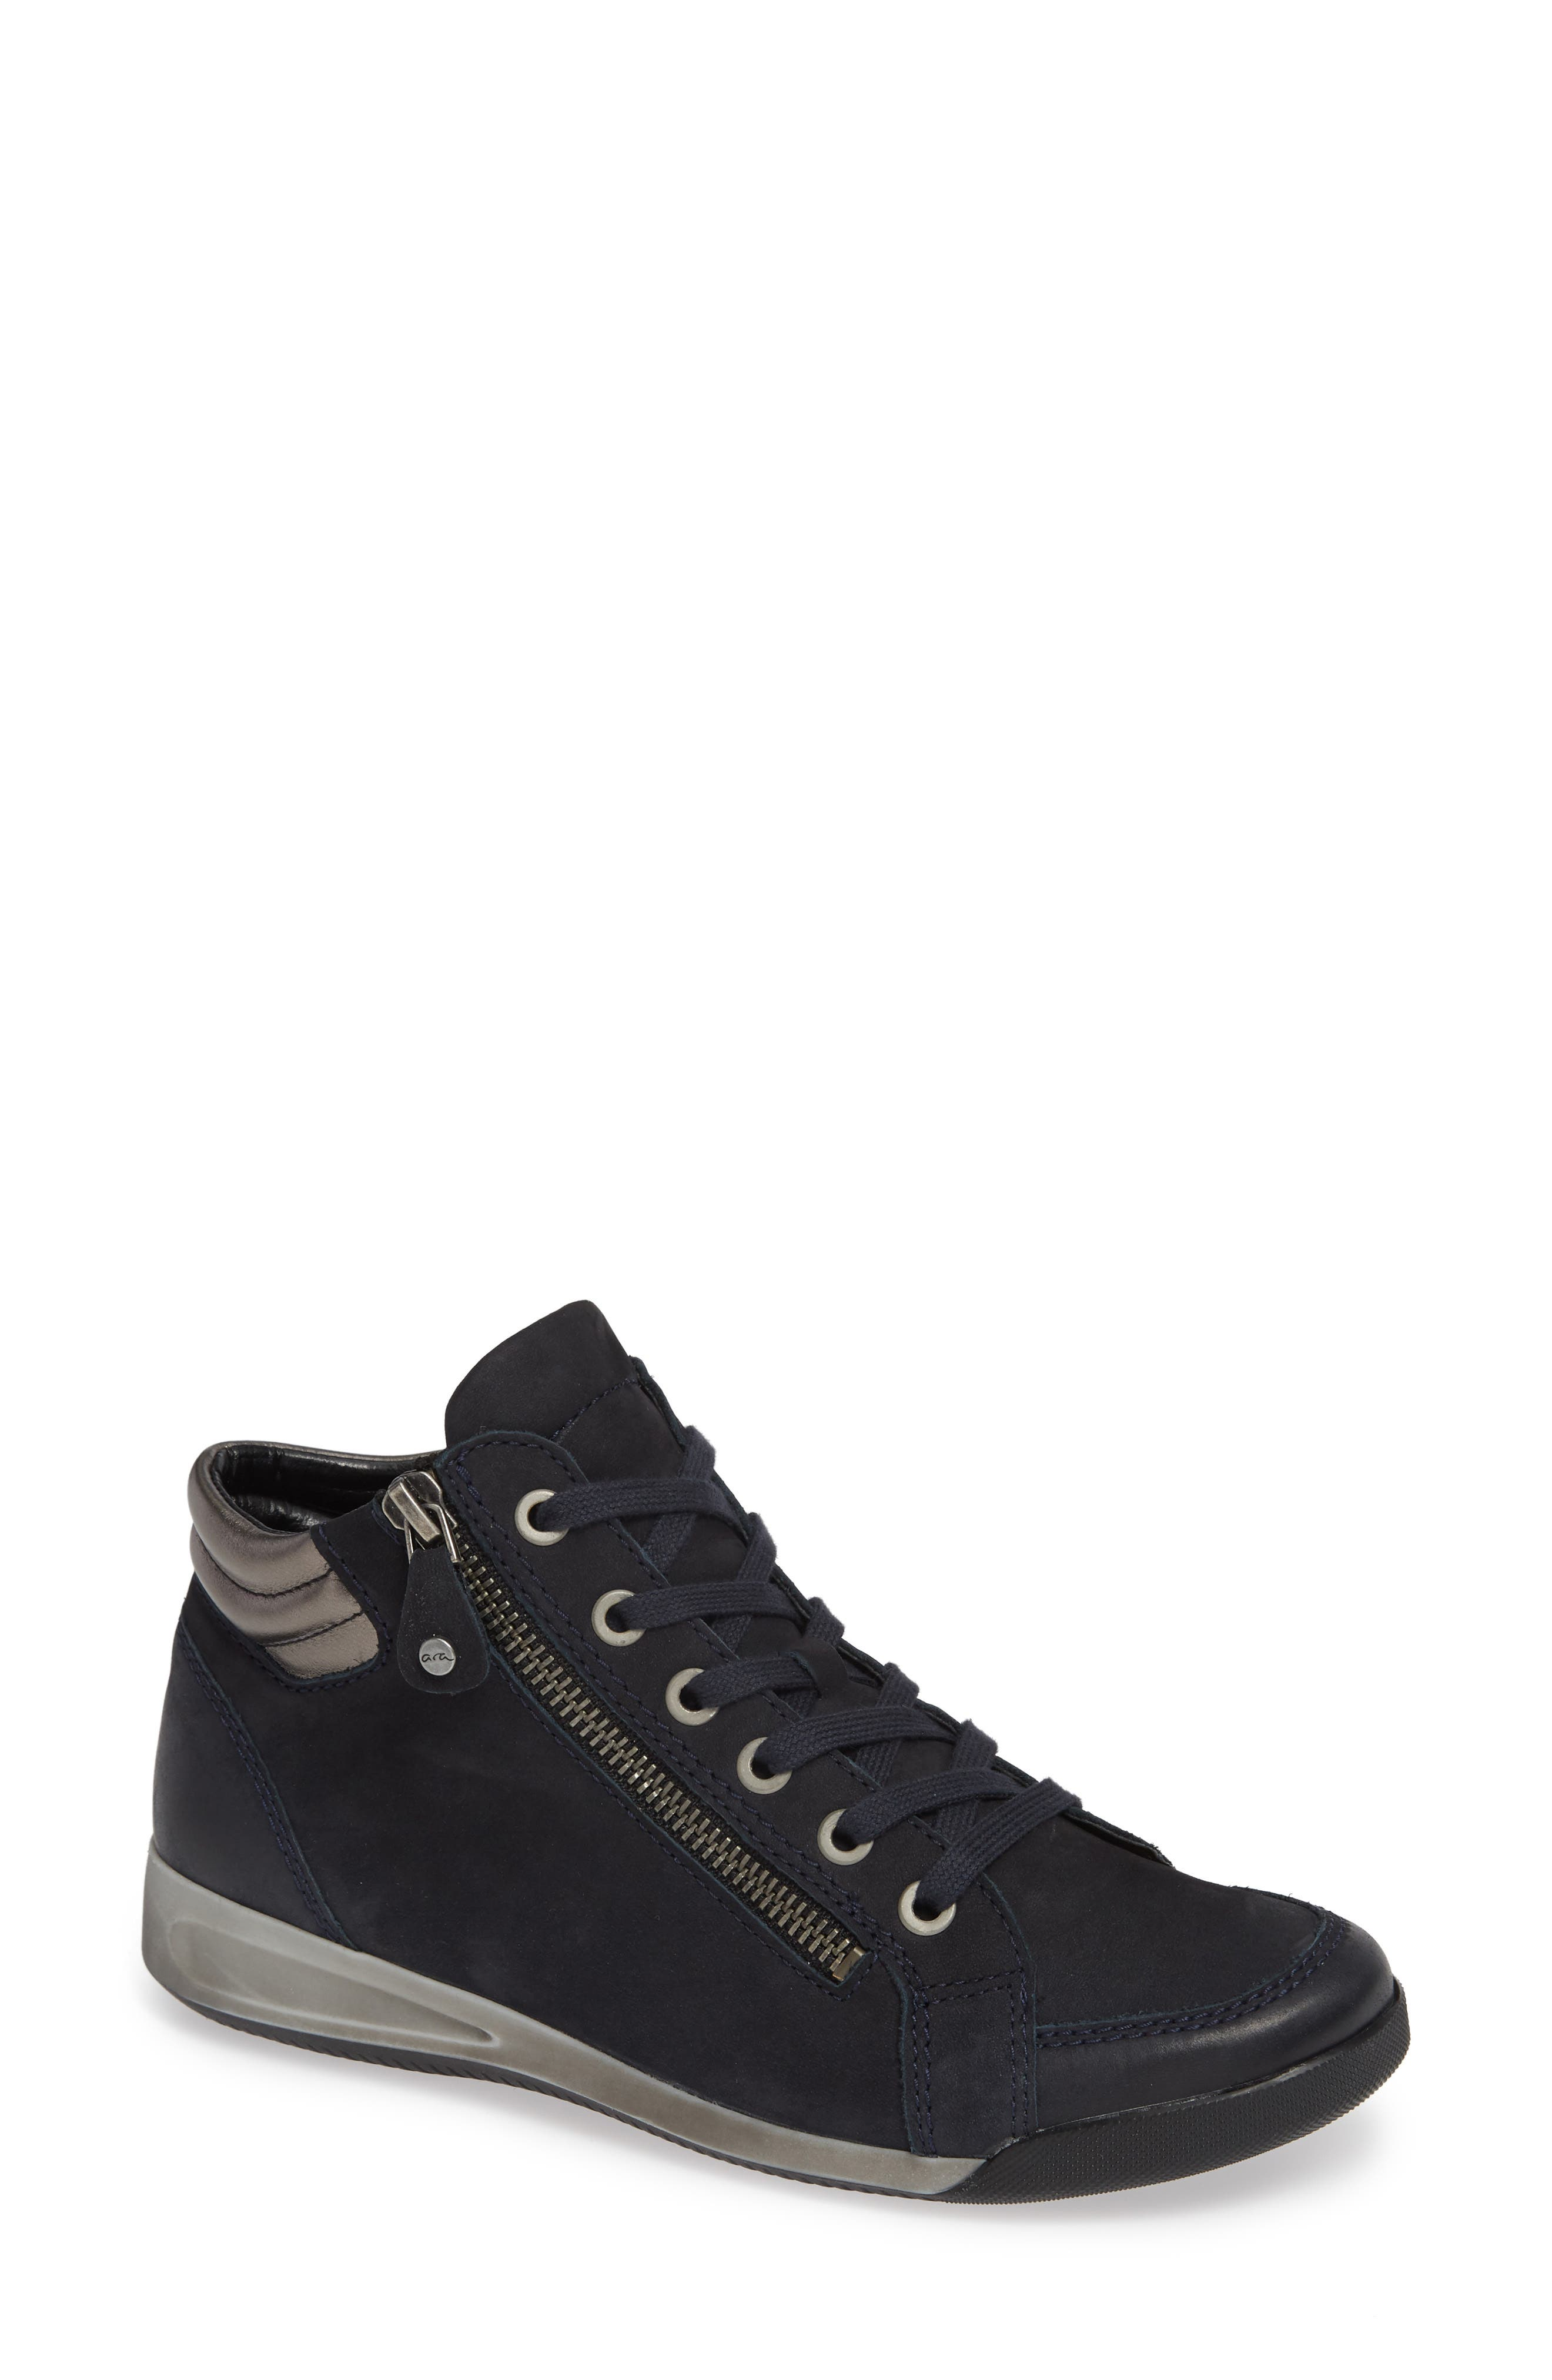 Rylee High Top Sneaker,                         Main,                         color, BLUE NUBUCK LEATHER